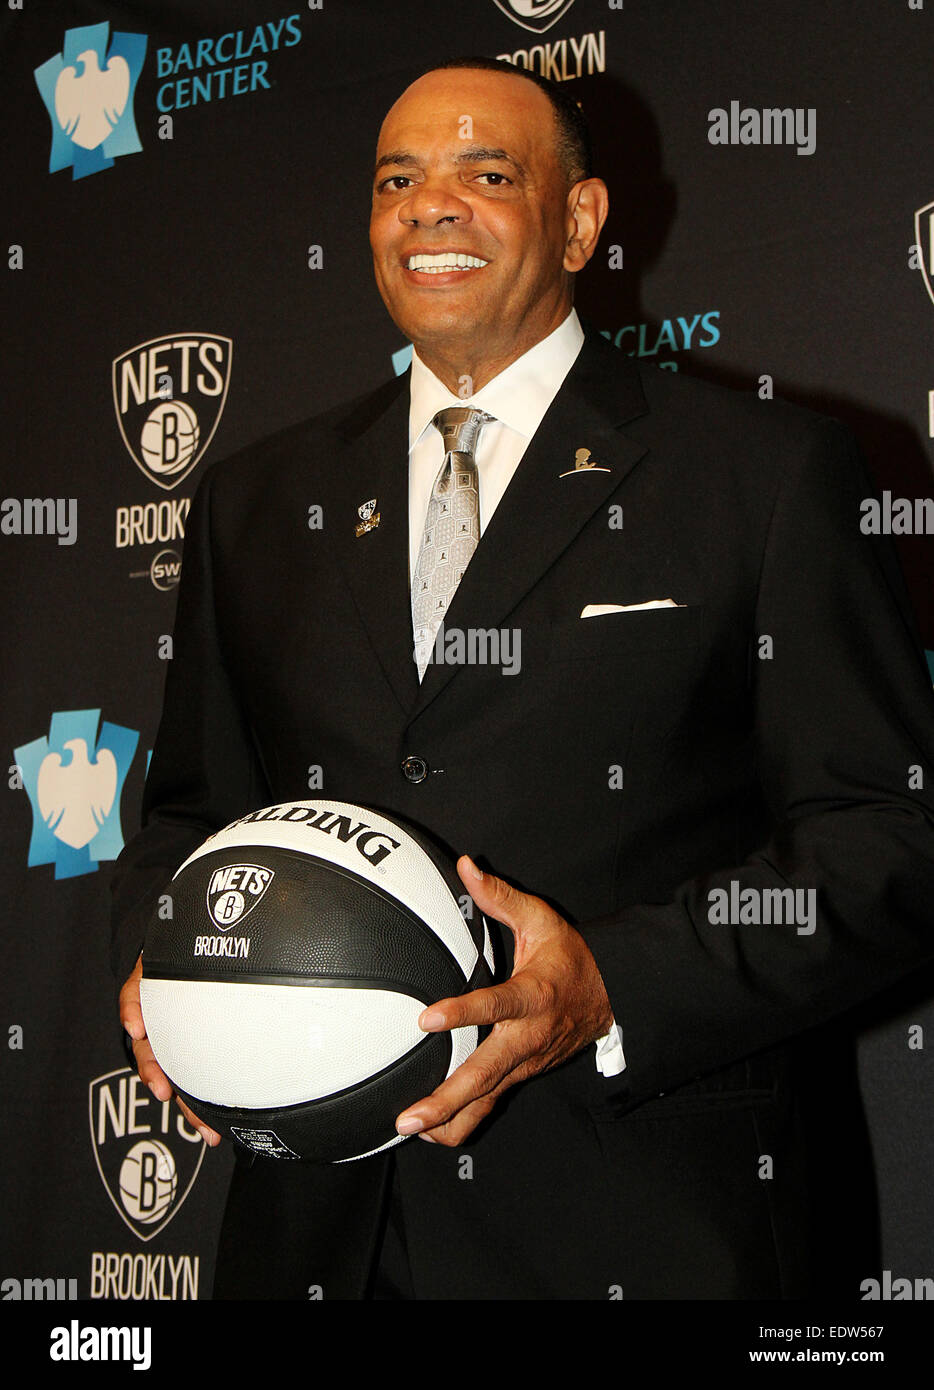 The Brooklyn Nets introduce their new head coach Lionel Hollins